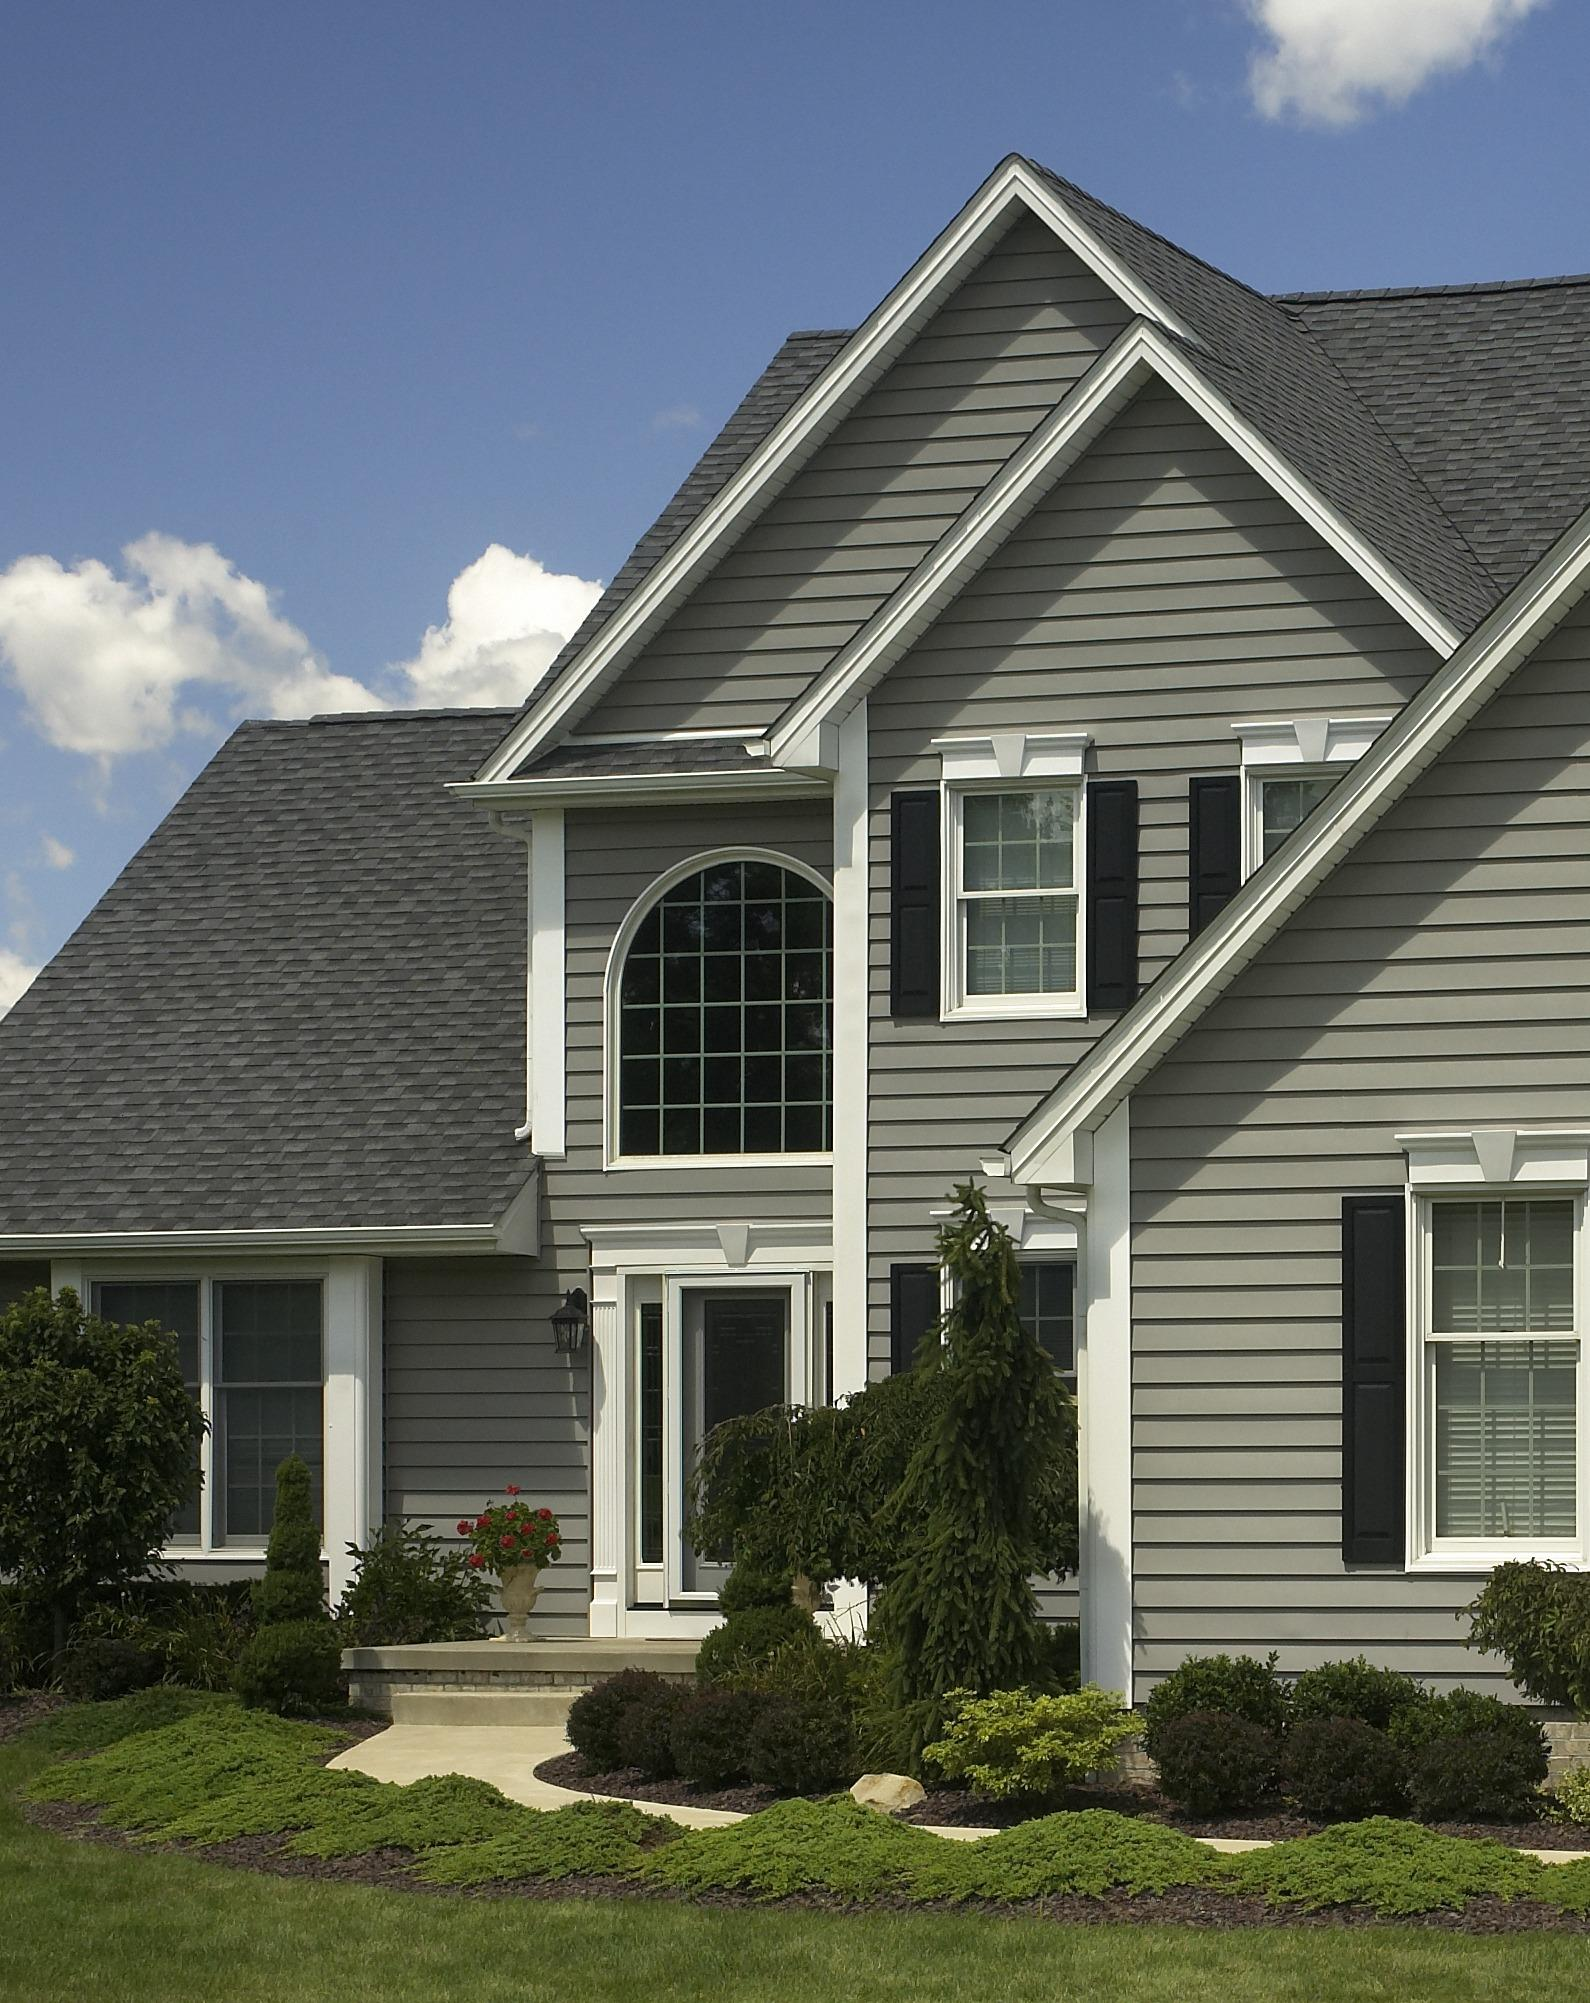 Universal windows direct of indianapolis indianapolis indiana in for Exterior home improvement indianapolis